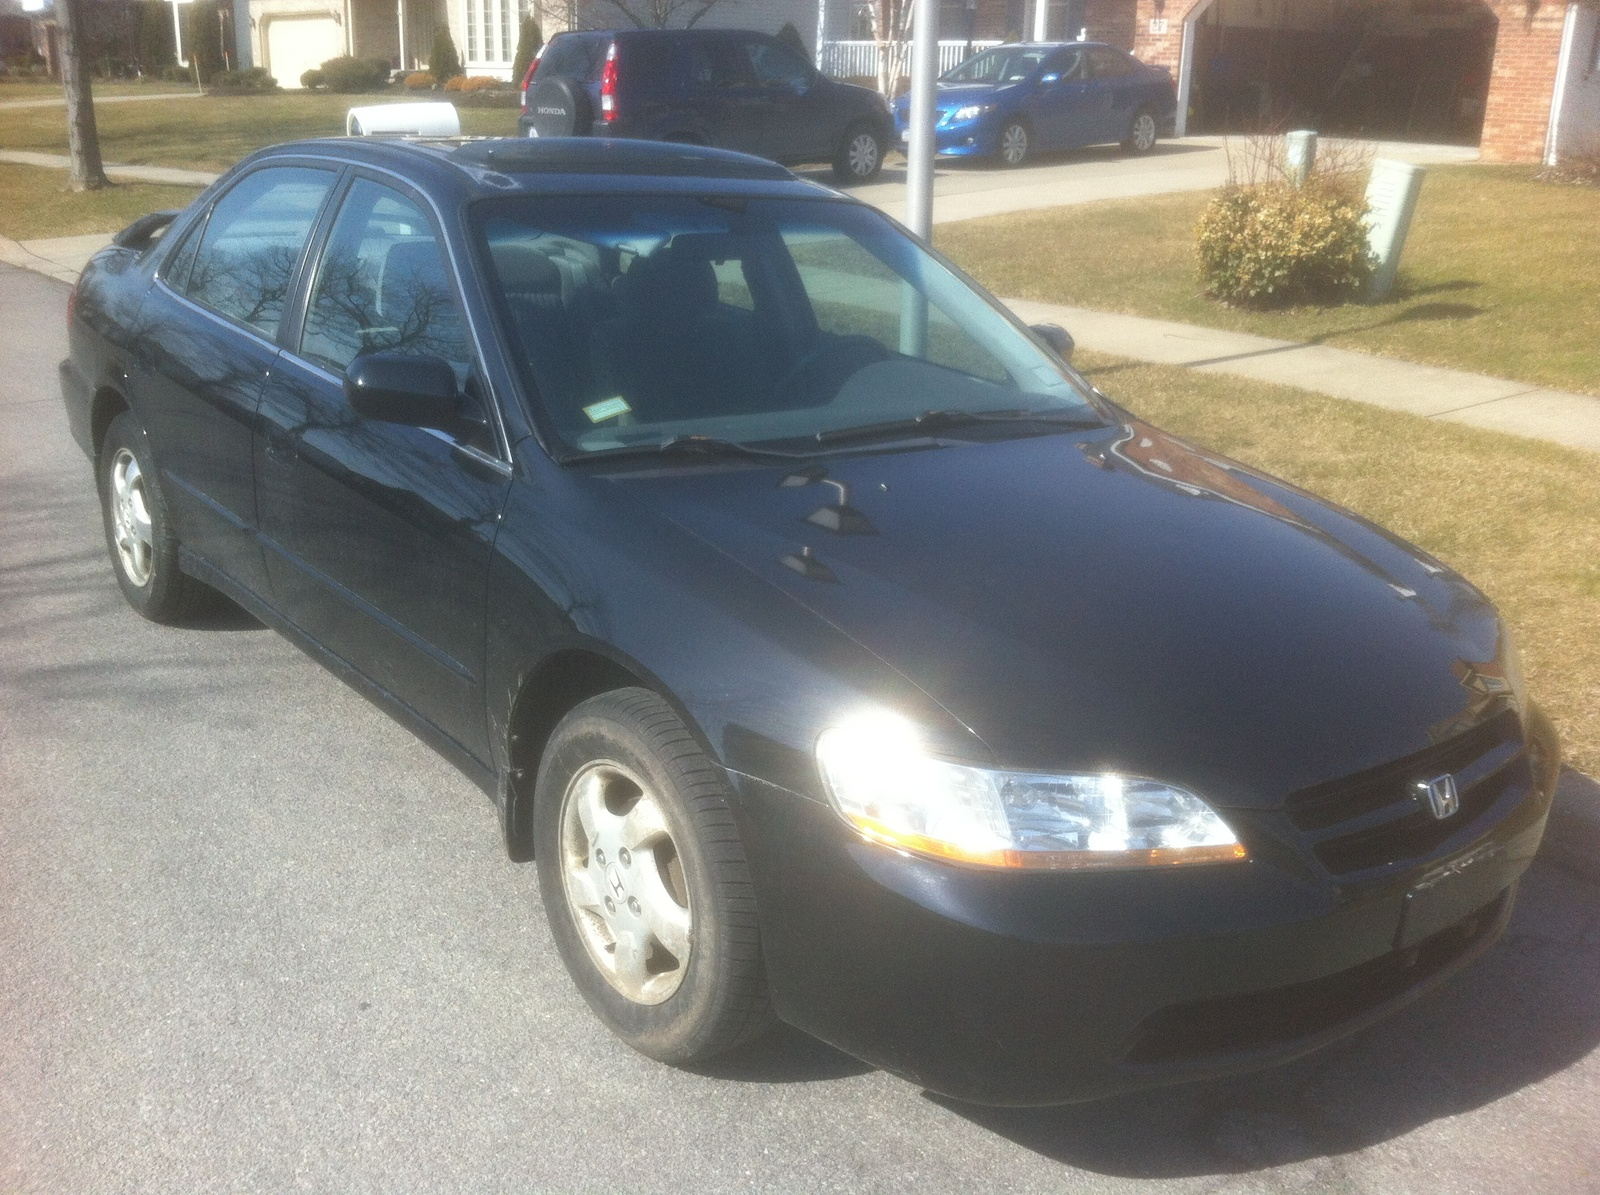 1998 Honda Accord EX, Picture of 1998 Honda Accord 4 Dr EX Sedan, exterior